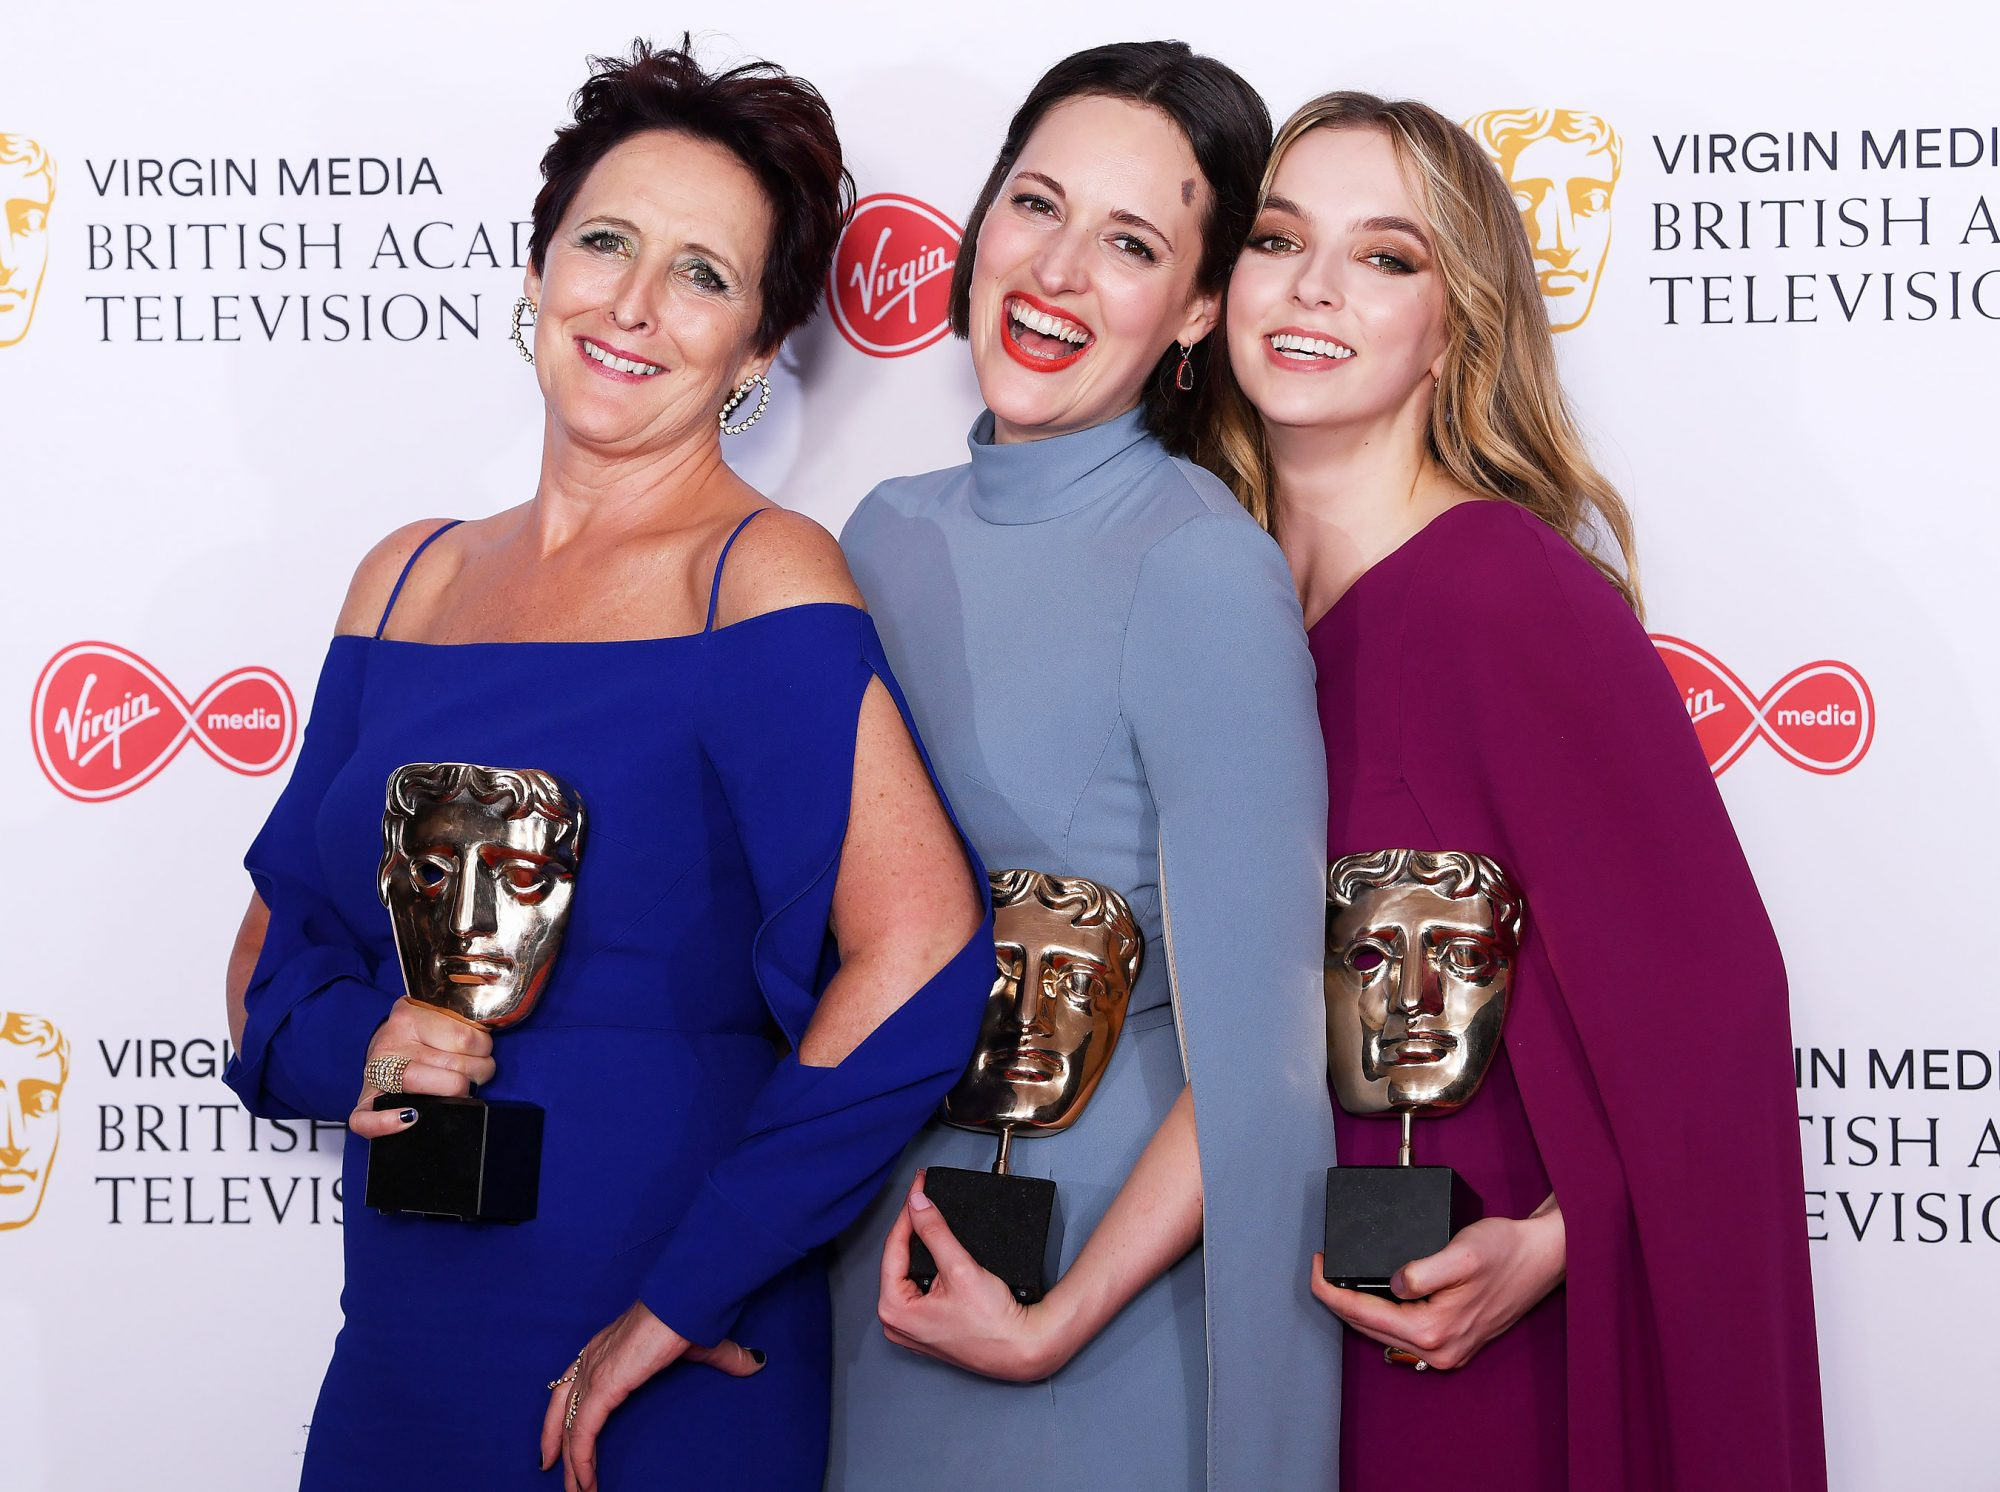 Fiona Shaw, Phoebe Waller-Bridge and Jodie Comer